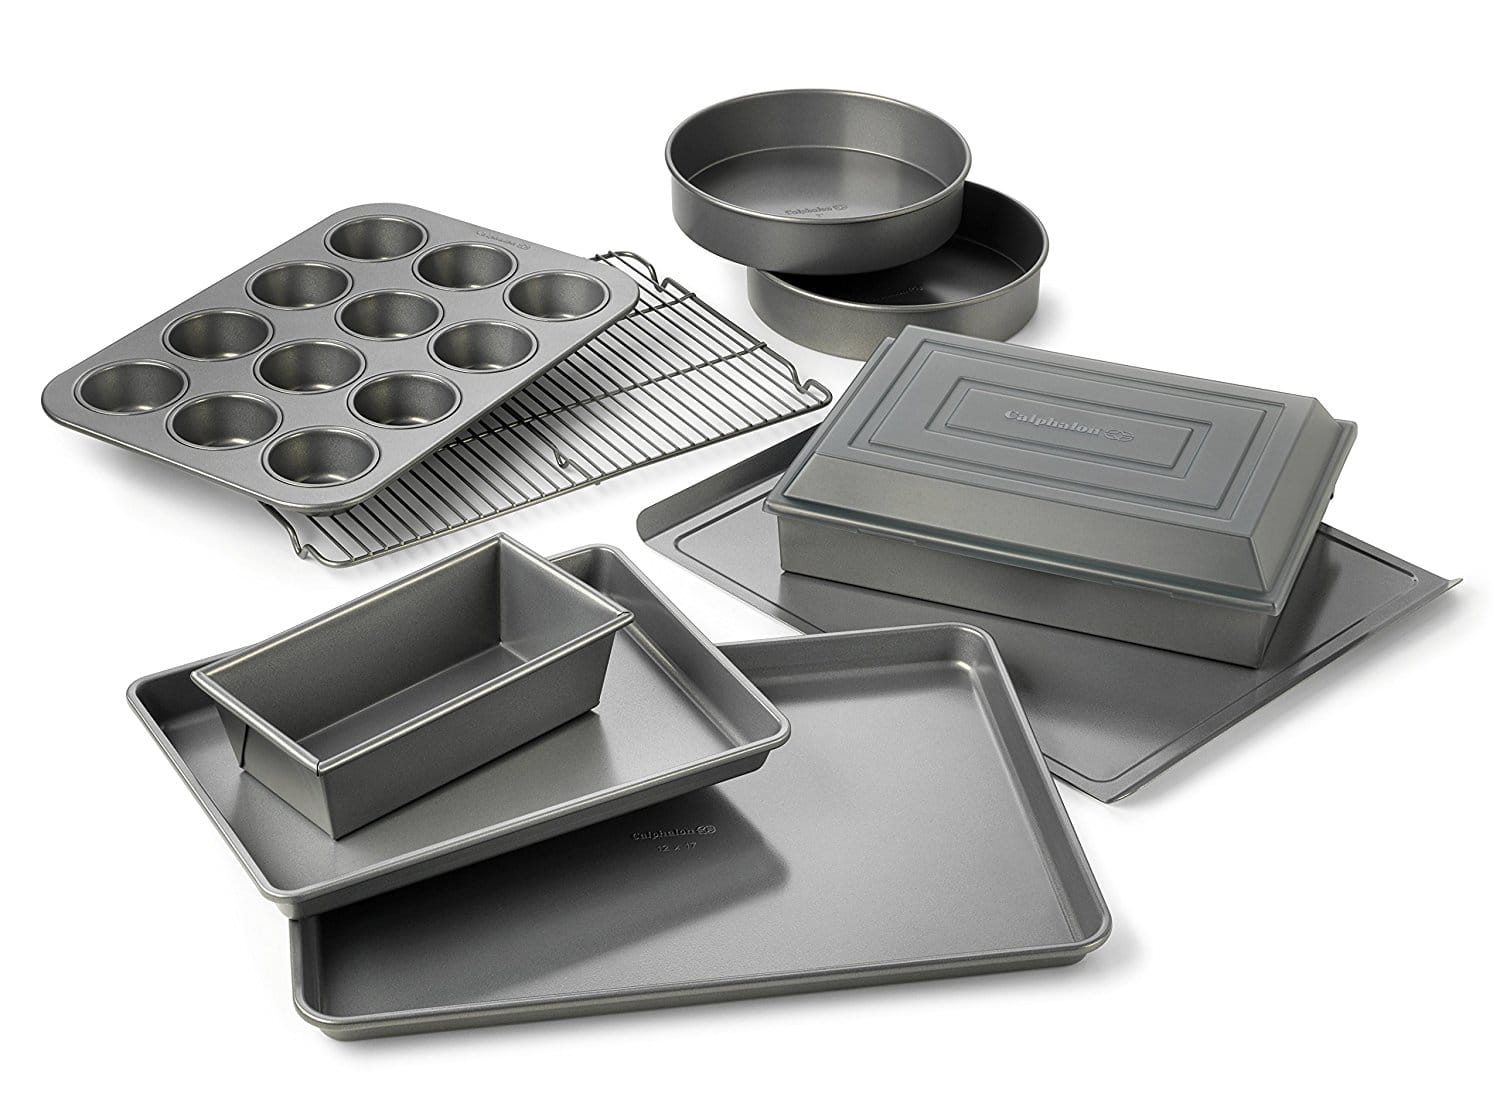 Calphalon Nonstick Bakeware 10-pc. Bakeware Set --- $52.49+tax Amazon or Macy's